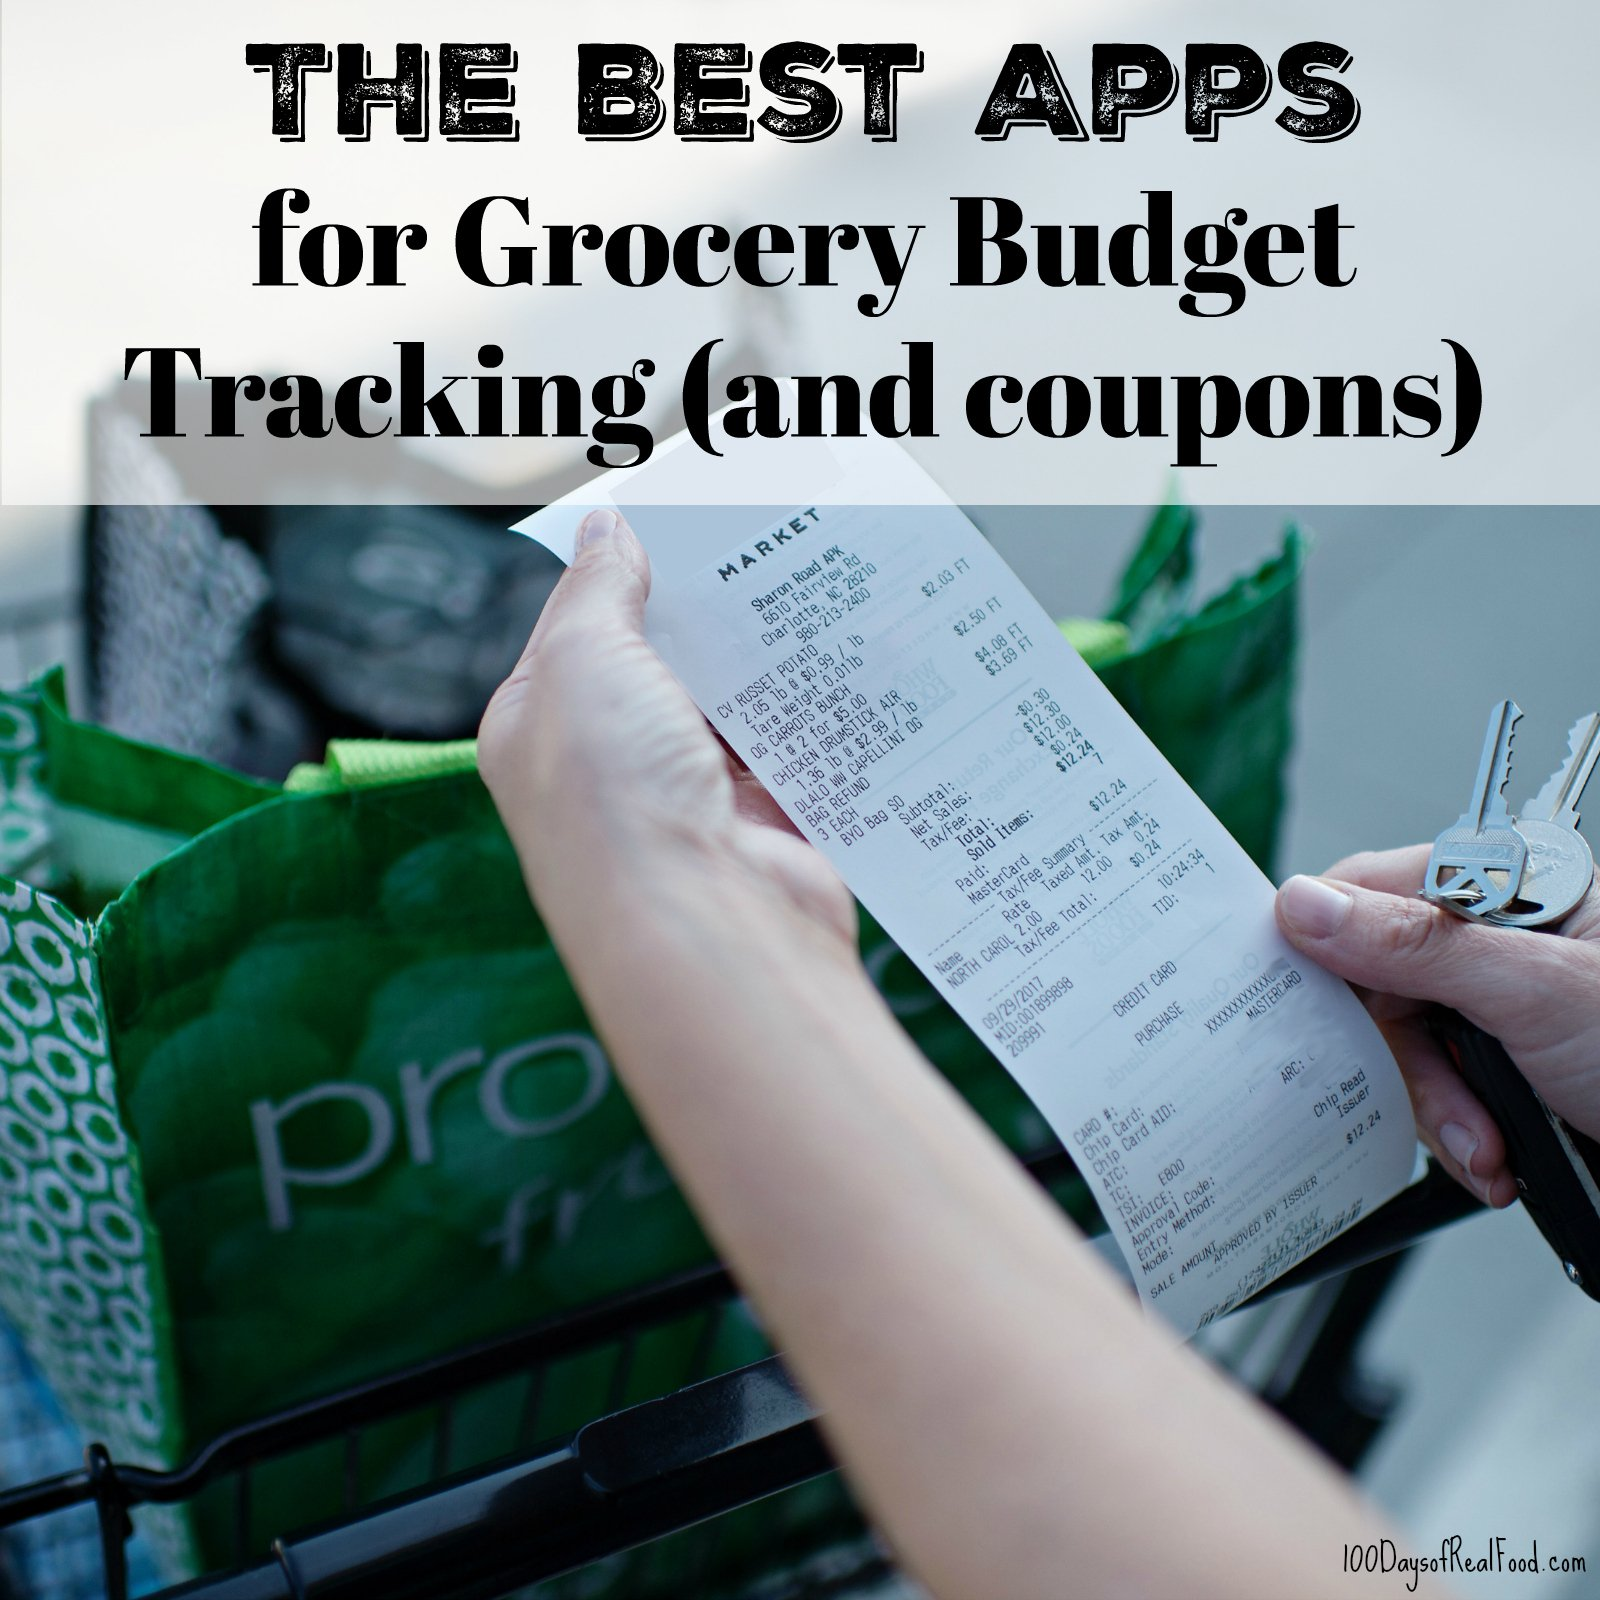 grocery receipt - The Best Apps for Grocery Budget Tracking and Coupons on 100 Days of Real Food